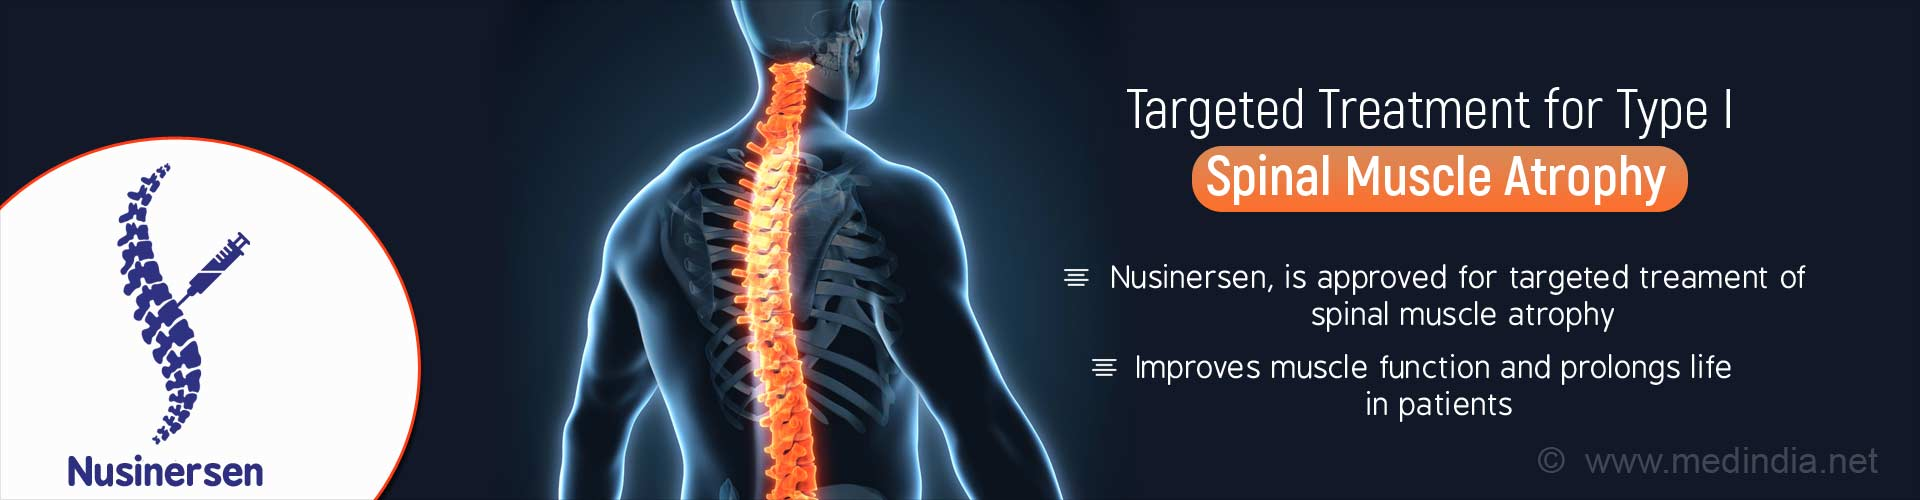 Nusinersen Shows Benefit in Type I Spinal Muscle Atrophy